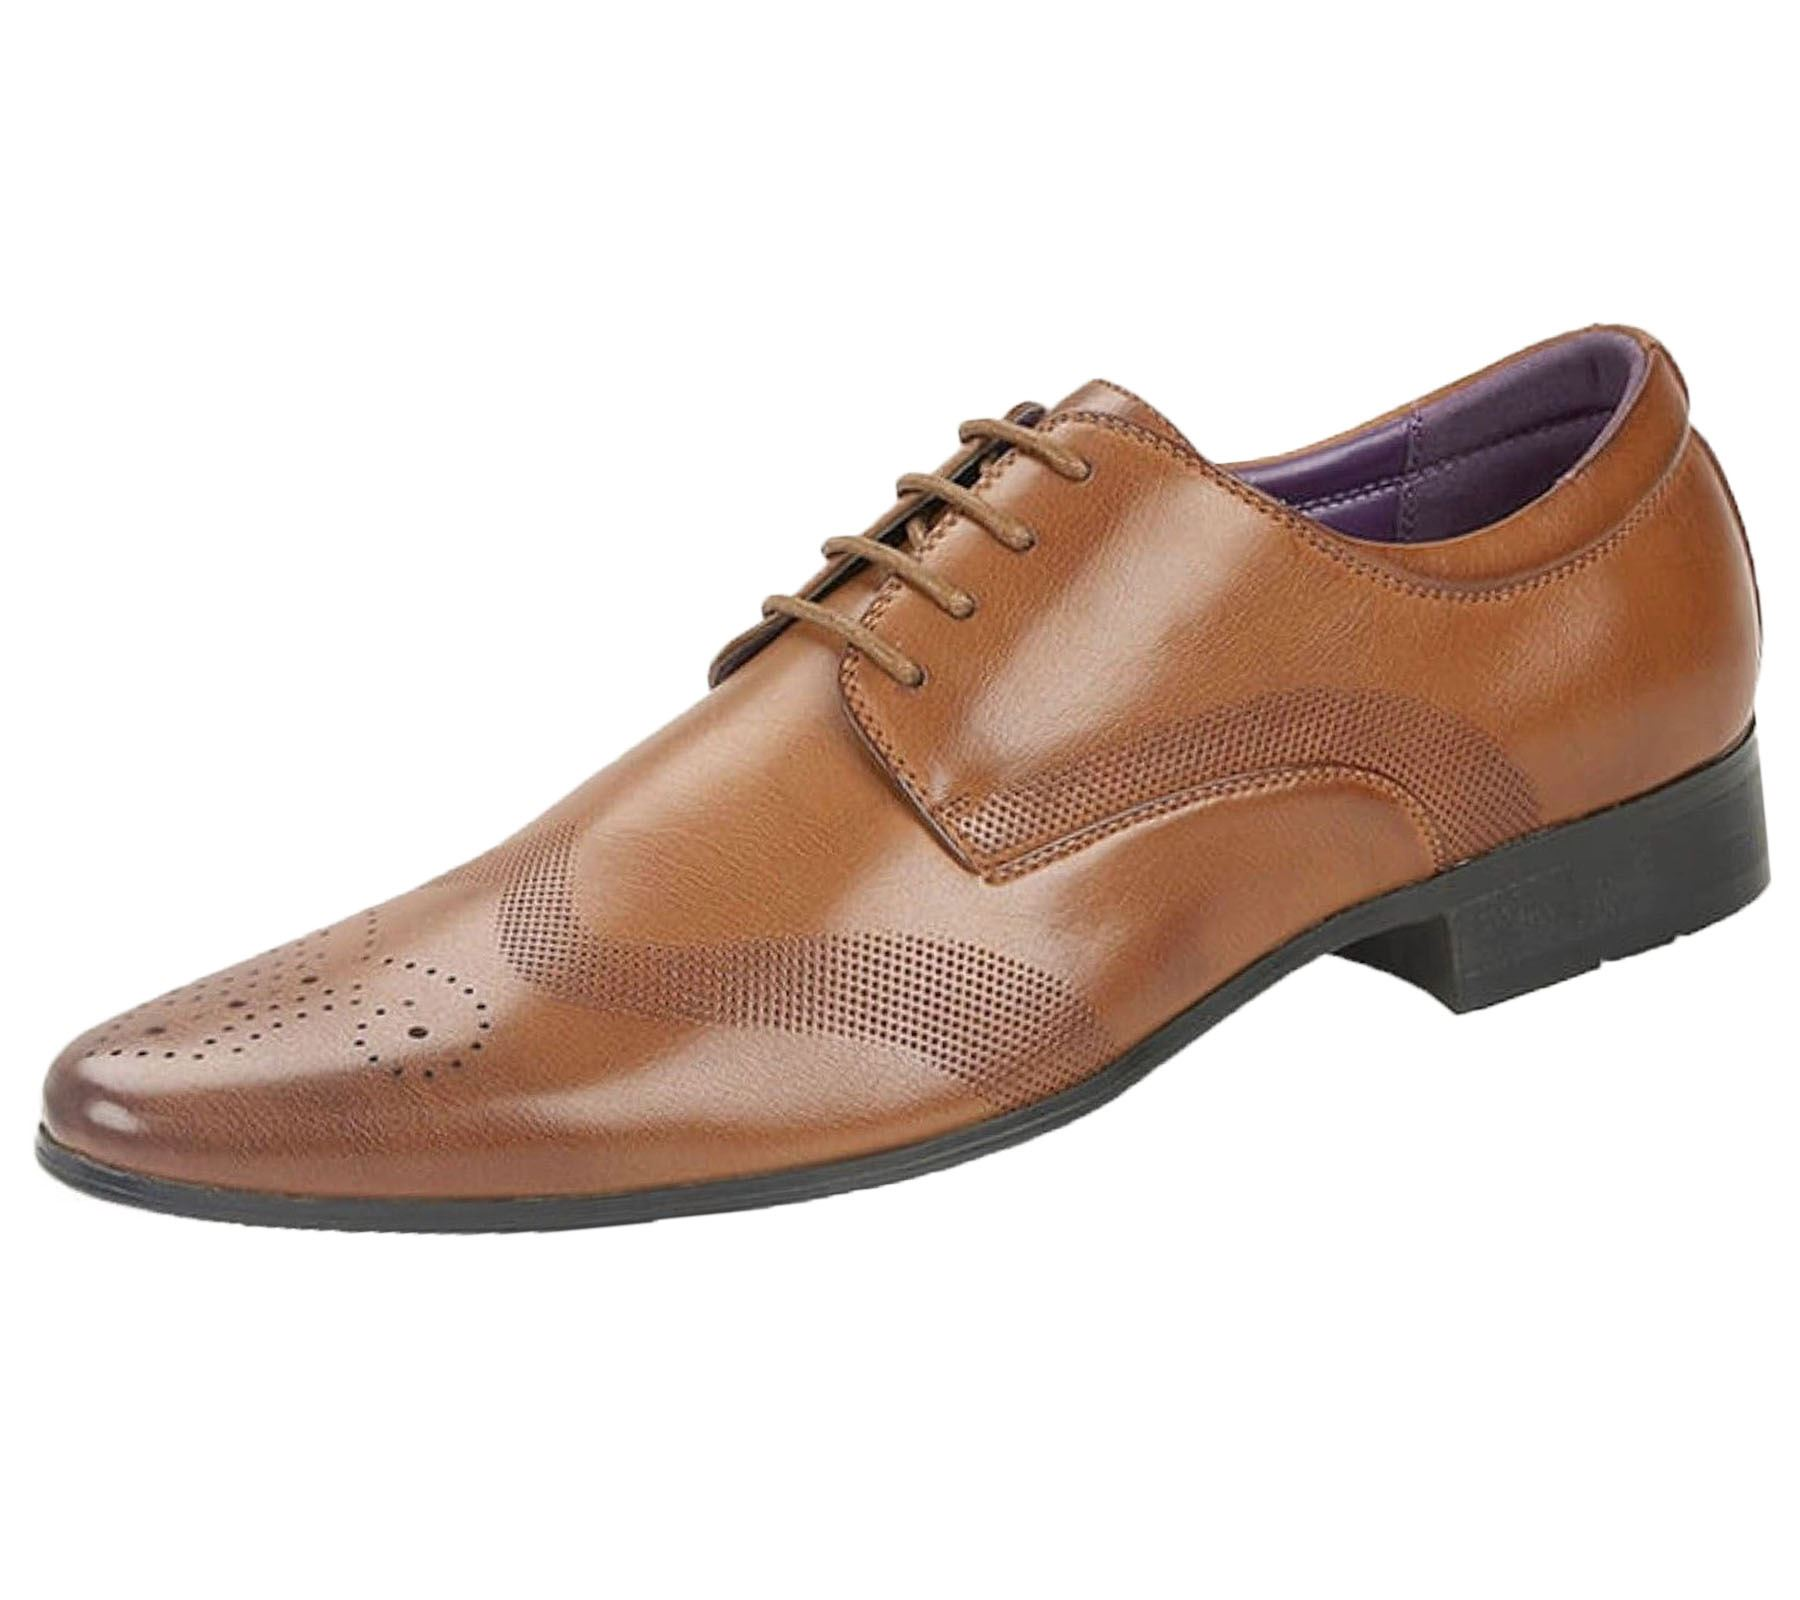 Mens Brogues Shoes Office Wedding Formal Smart Dress Shoes New Size